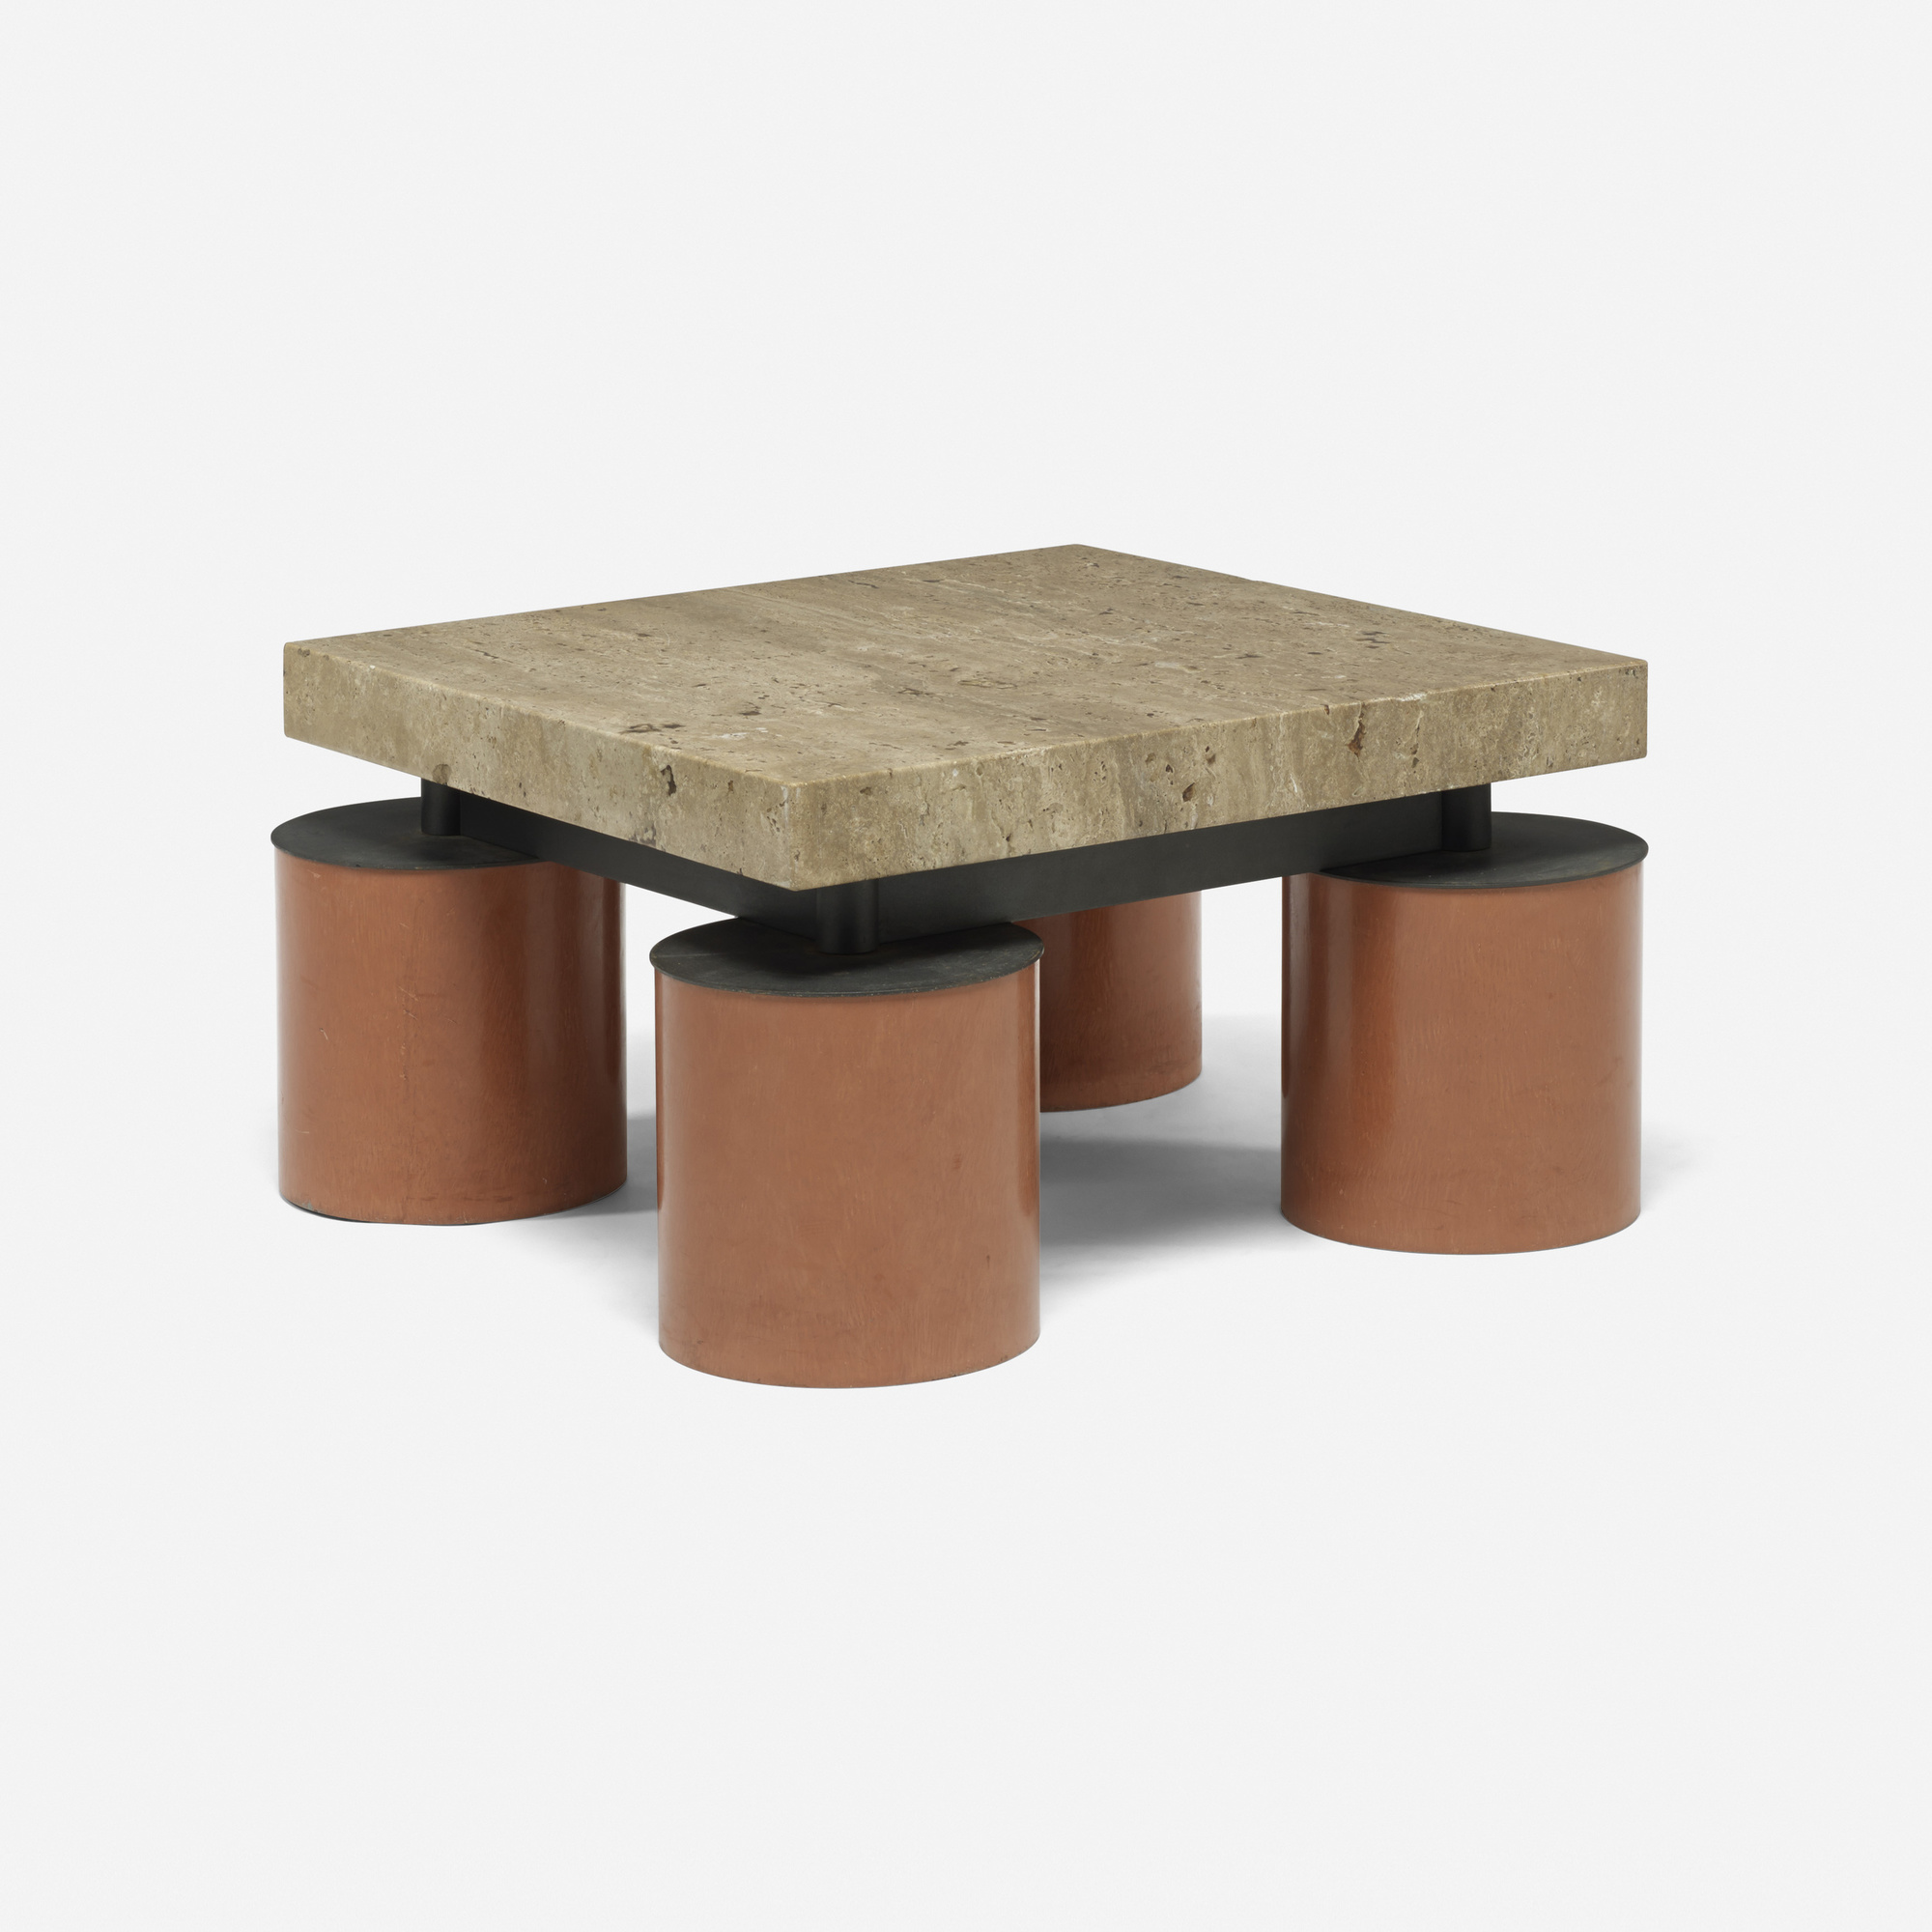 303: Massimo Vignelli / custom coffee table (1 of 3)